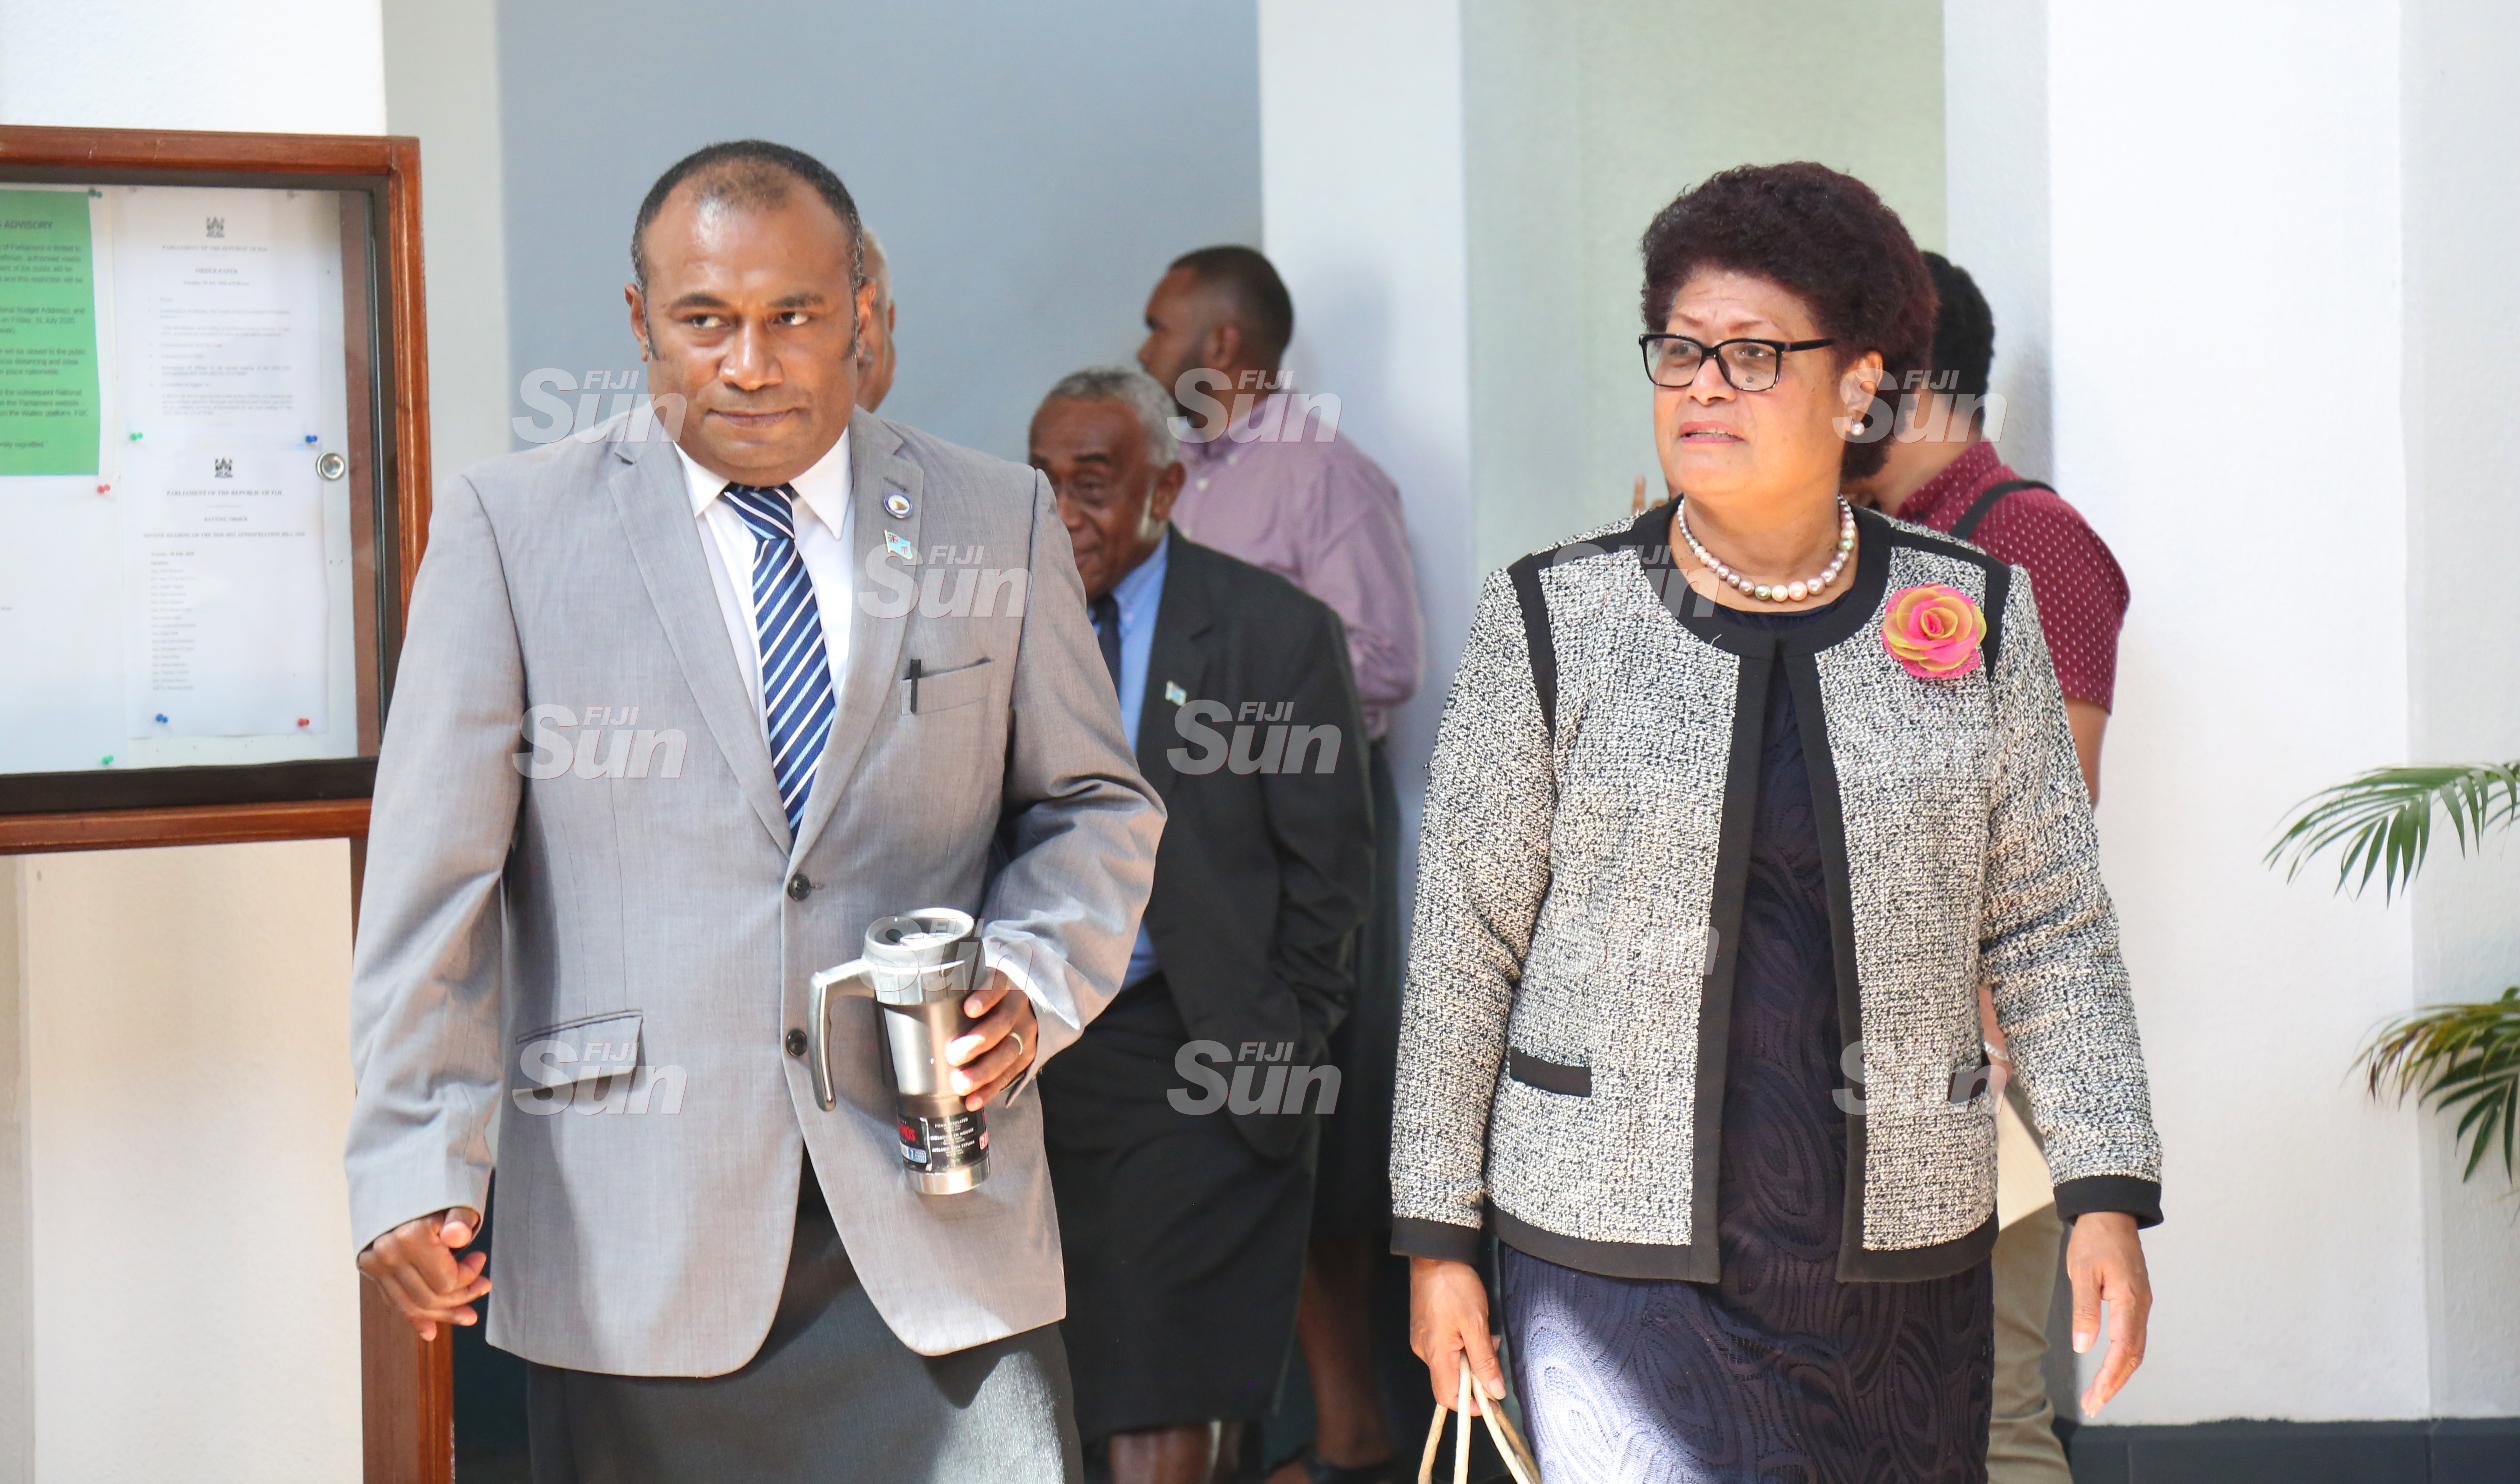 Minister for Health and Medical Services, Dr Ifereimi Waqainabete and Opposition member, Salote Radrodro outside of Parliament on July 28, 2020. Photo: Kelera Sovasiga